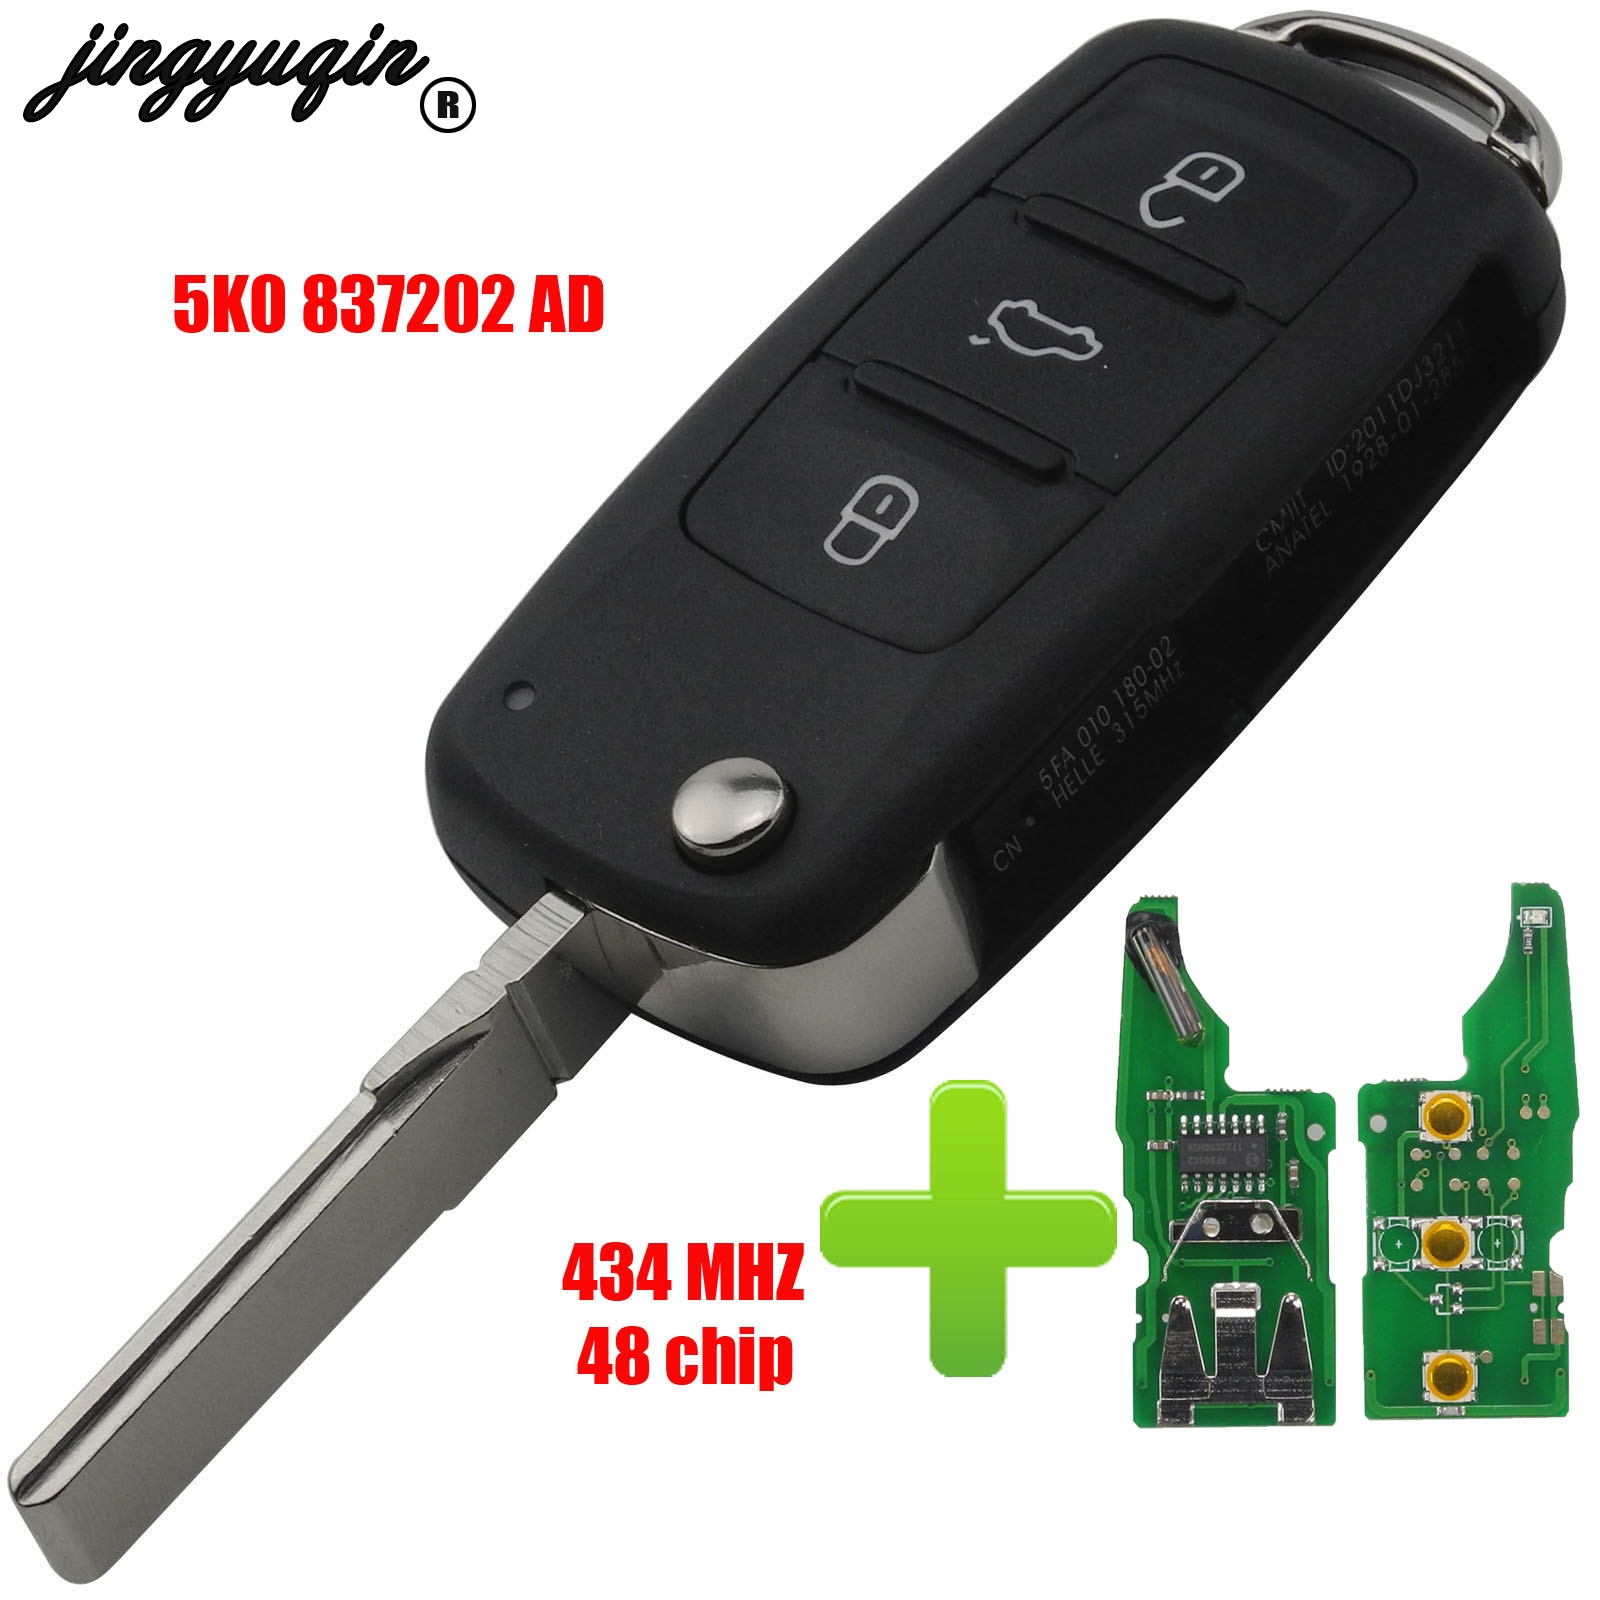 jingyuqin 5K0 837 202 AD Remote Key for VW/VOLKSWAGEN 5K0837202AD Beetle/Caddy/Eos/Golf/Jetta/Polo/Scirocco/Tiguan/Touran/UP|Car Key| |  - title=